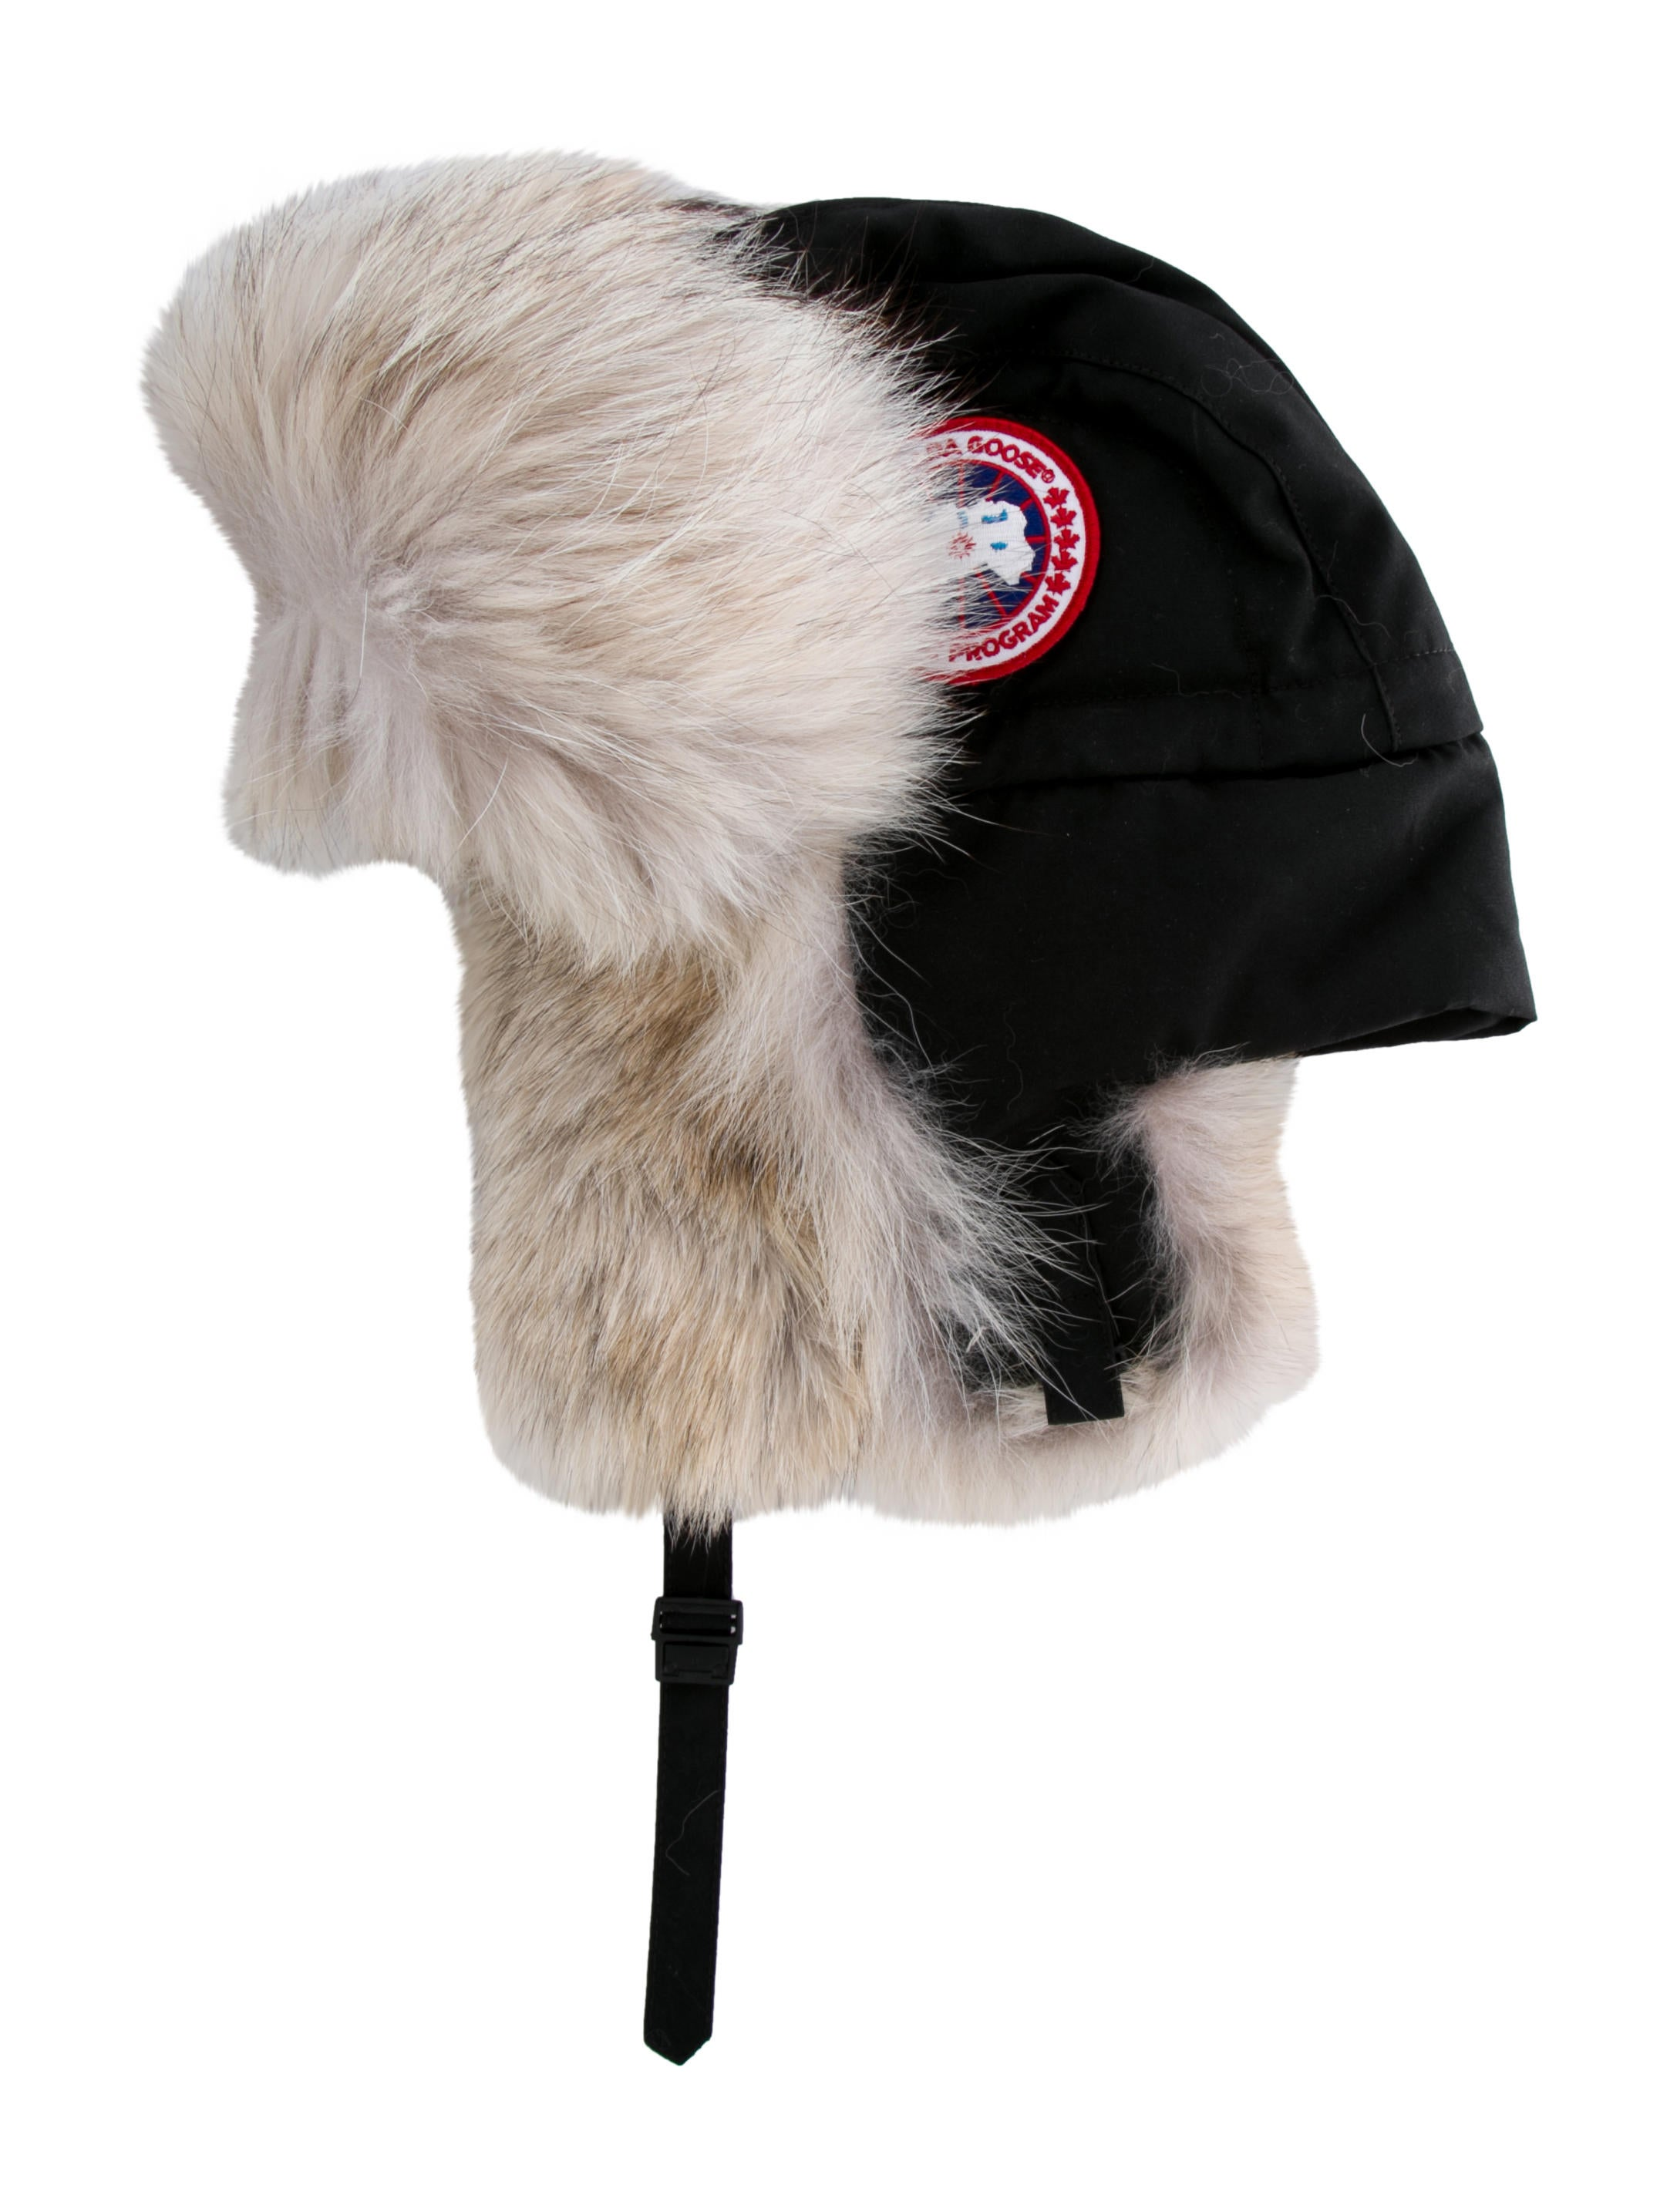 Canada Goose Fur-Trimmed Trapper Hat w  Tags - Accessories ... 20e9a4d1962